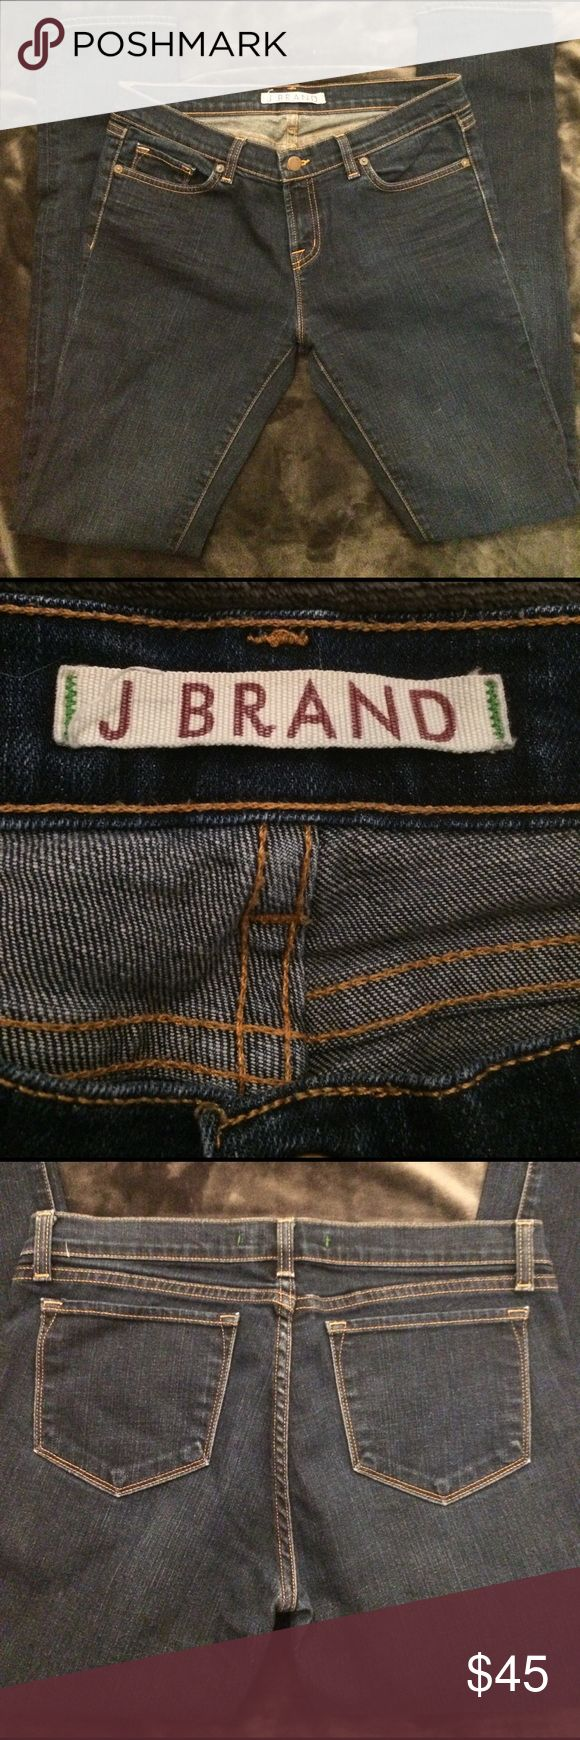 J Brand jeans Women's J brand jeans. No signs of wear J Brand Jeans Straight Leg